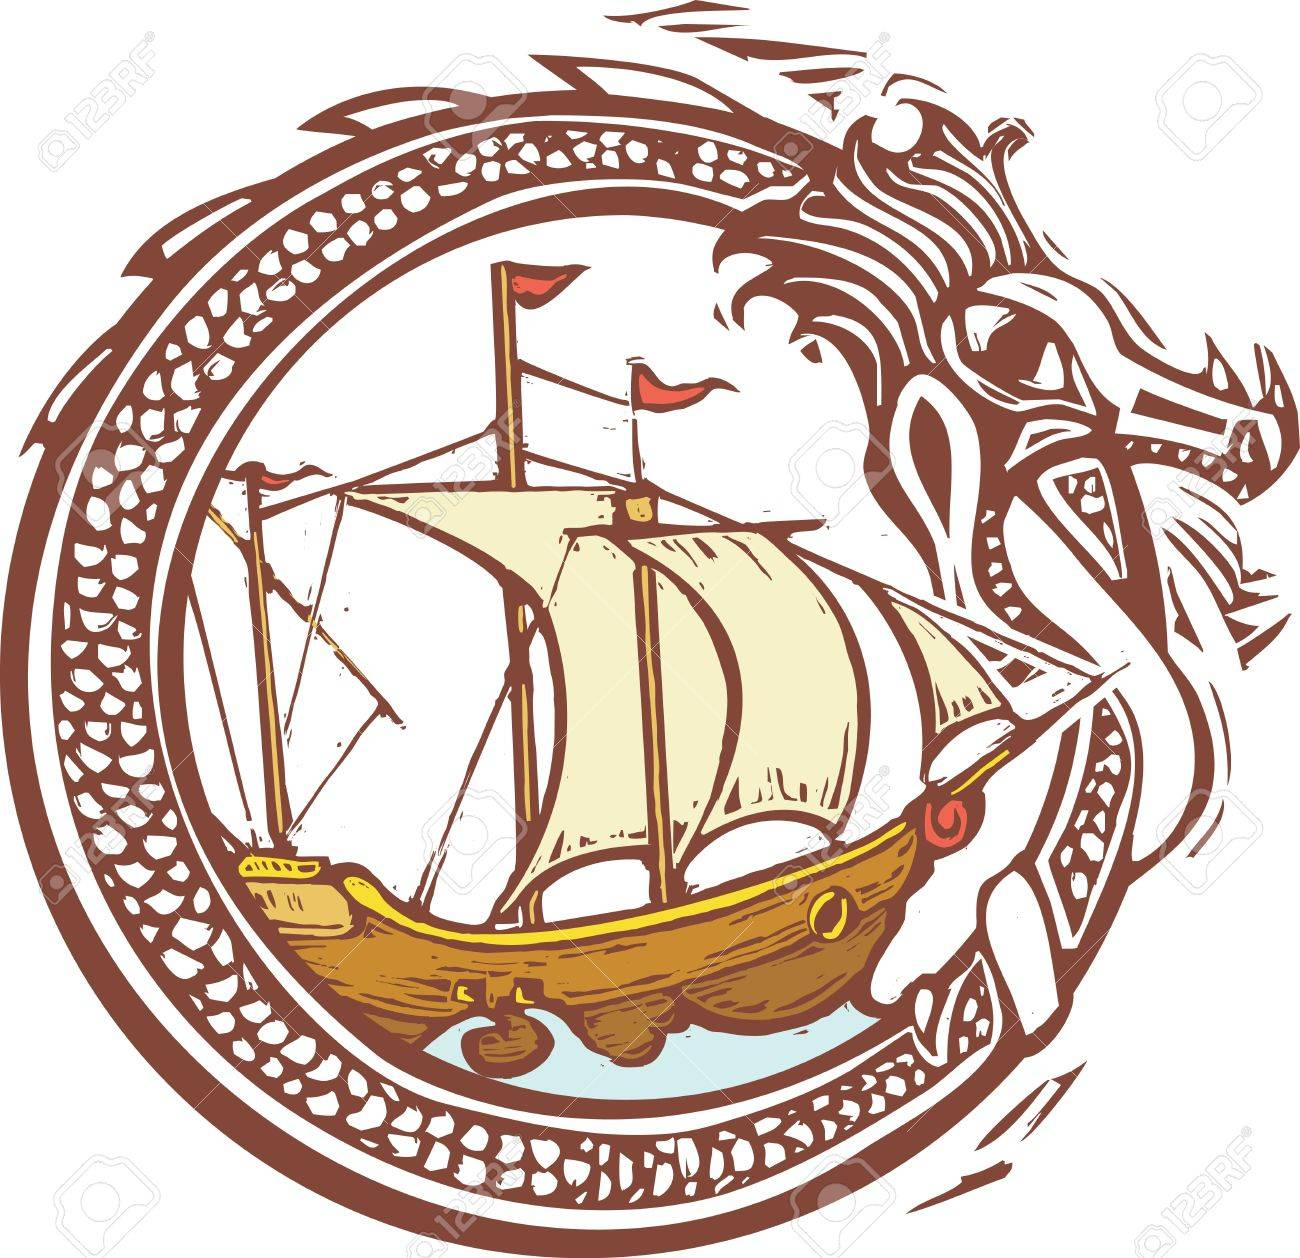 Woodcut style image of a dragon encircling a pirate ship Stock Vector - 19357863